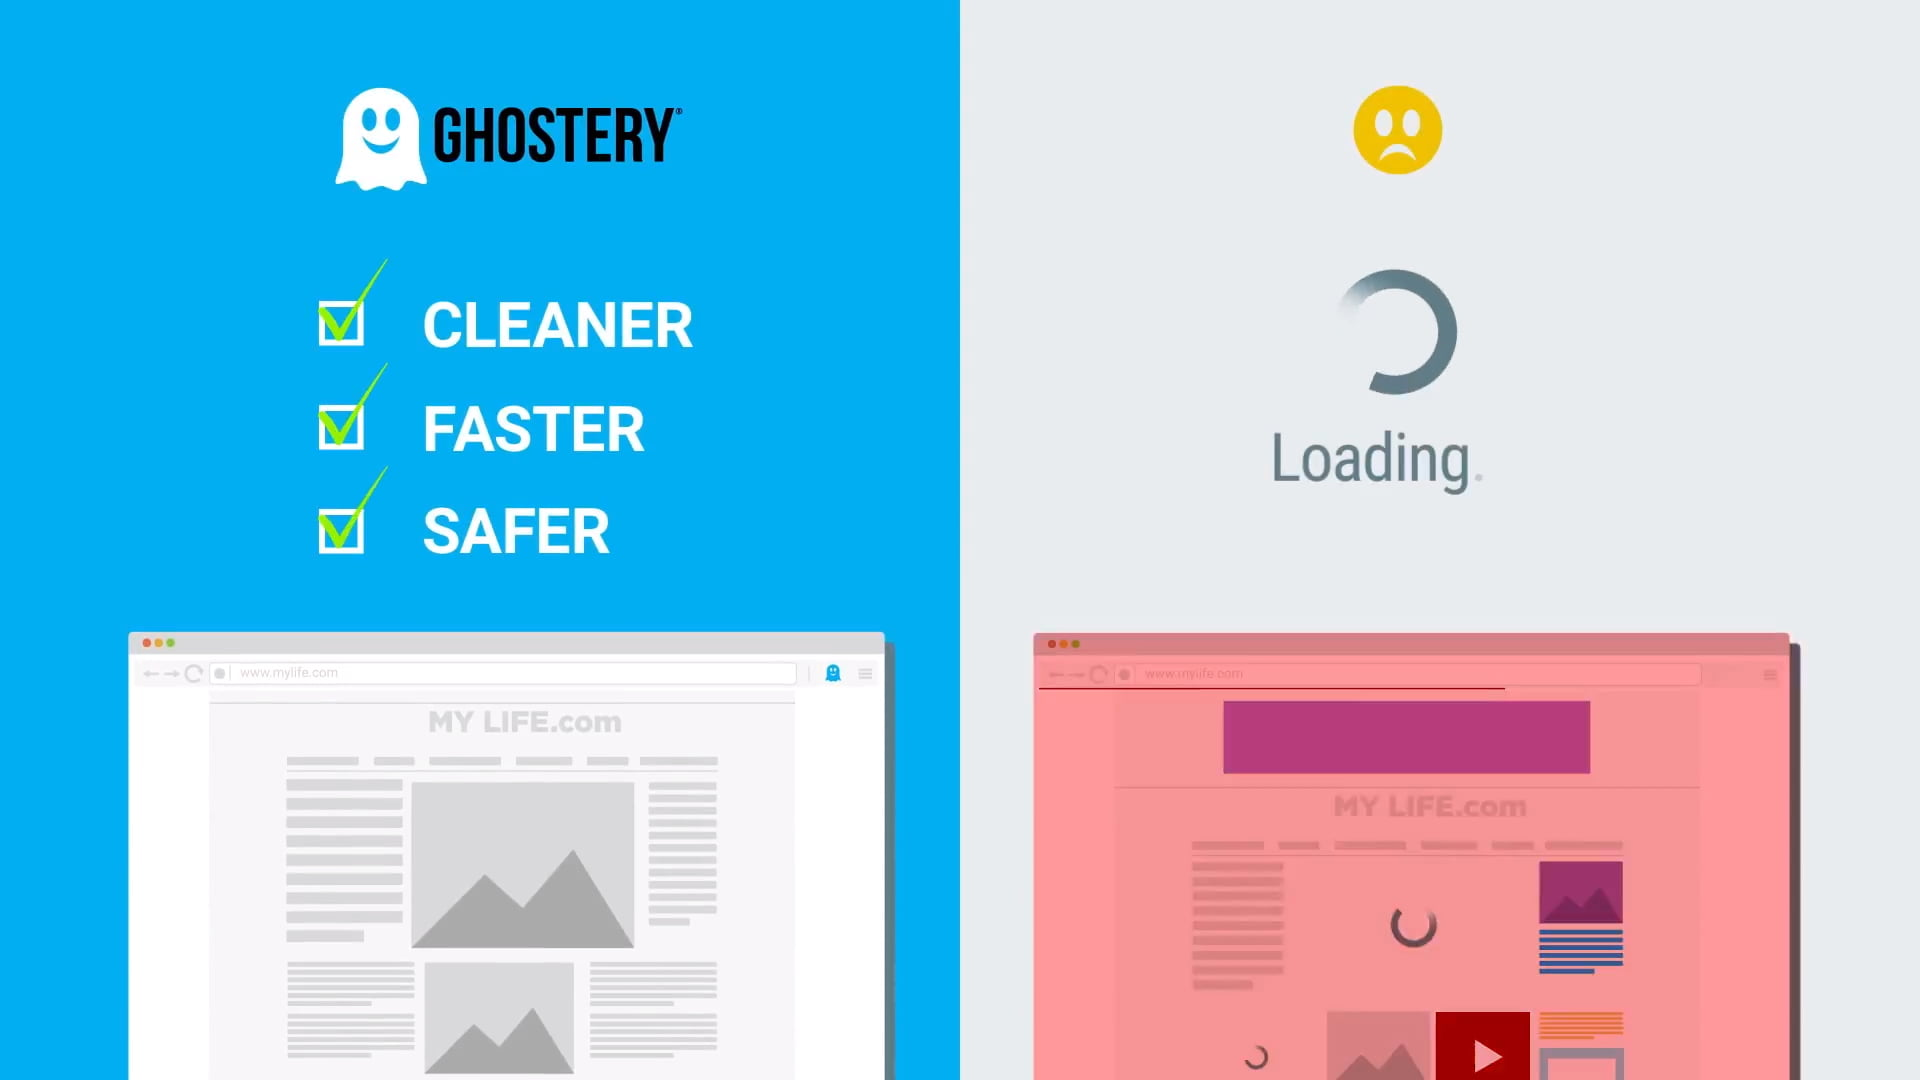 Ghostery released a new version of its mobile browser